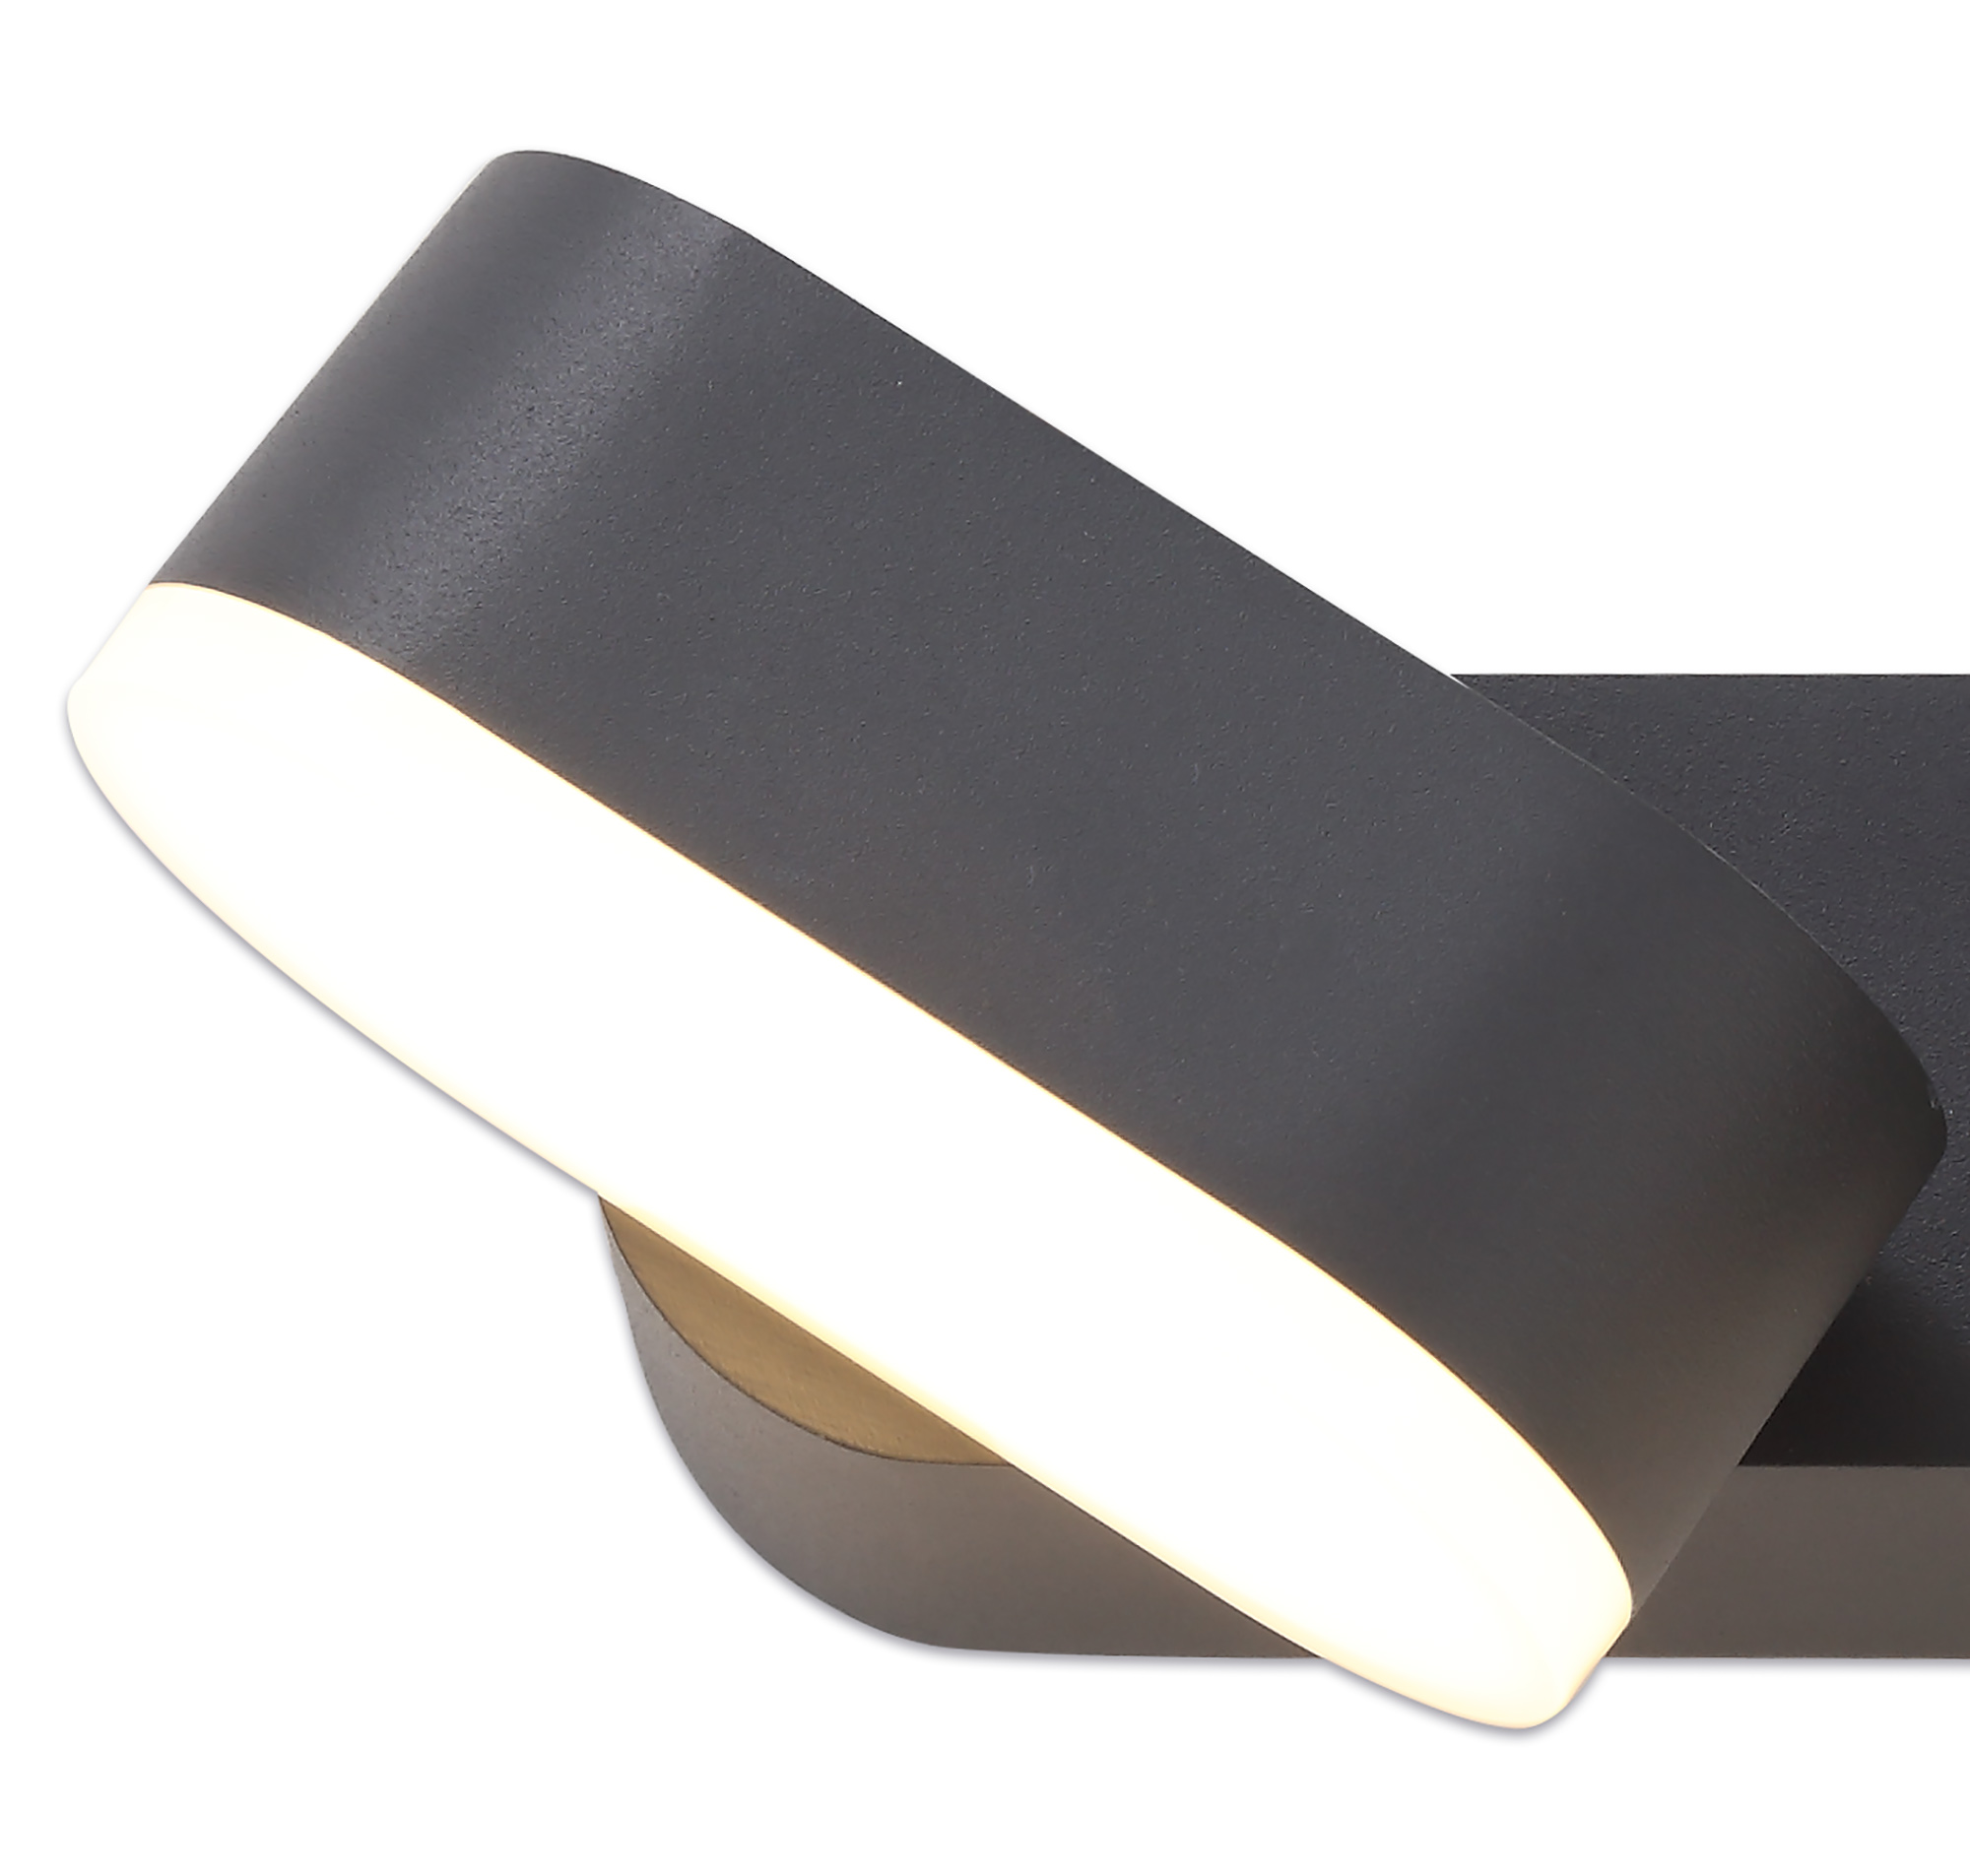 2 Light Adjustable Wall Lamp, 2 x 6W LED, 3000K, 780lm, IP54, Anthracite, 3yrs Warranty